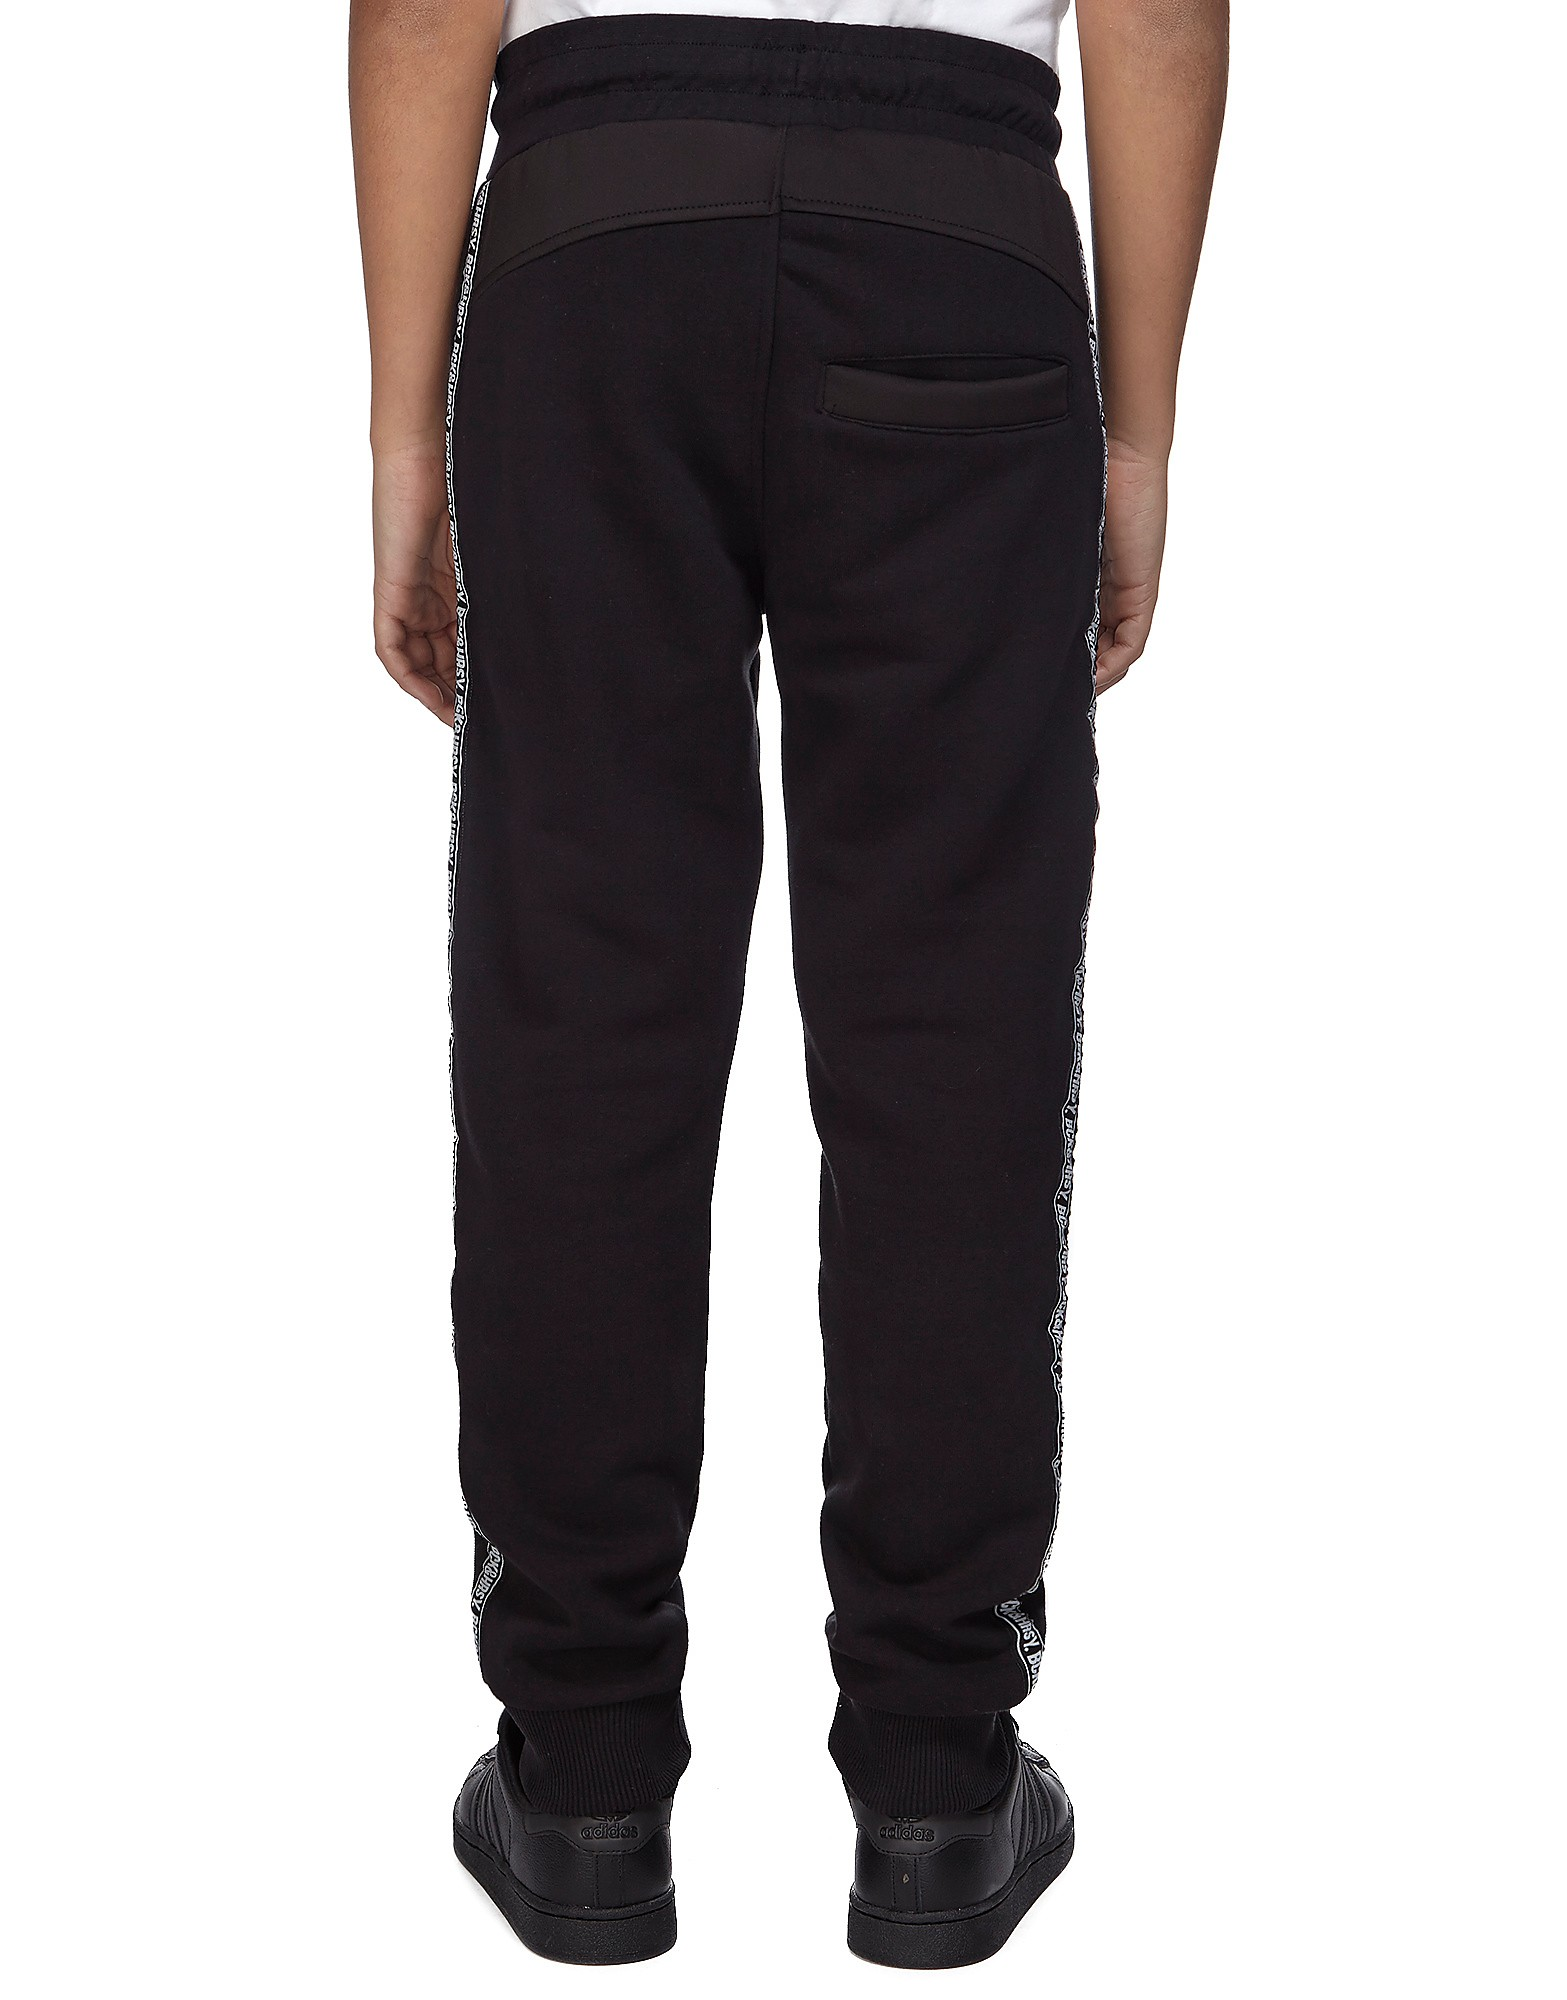 Beck and Hersey Hitter Track Pants Junior